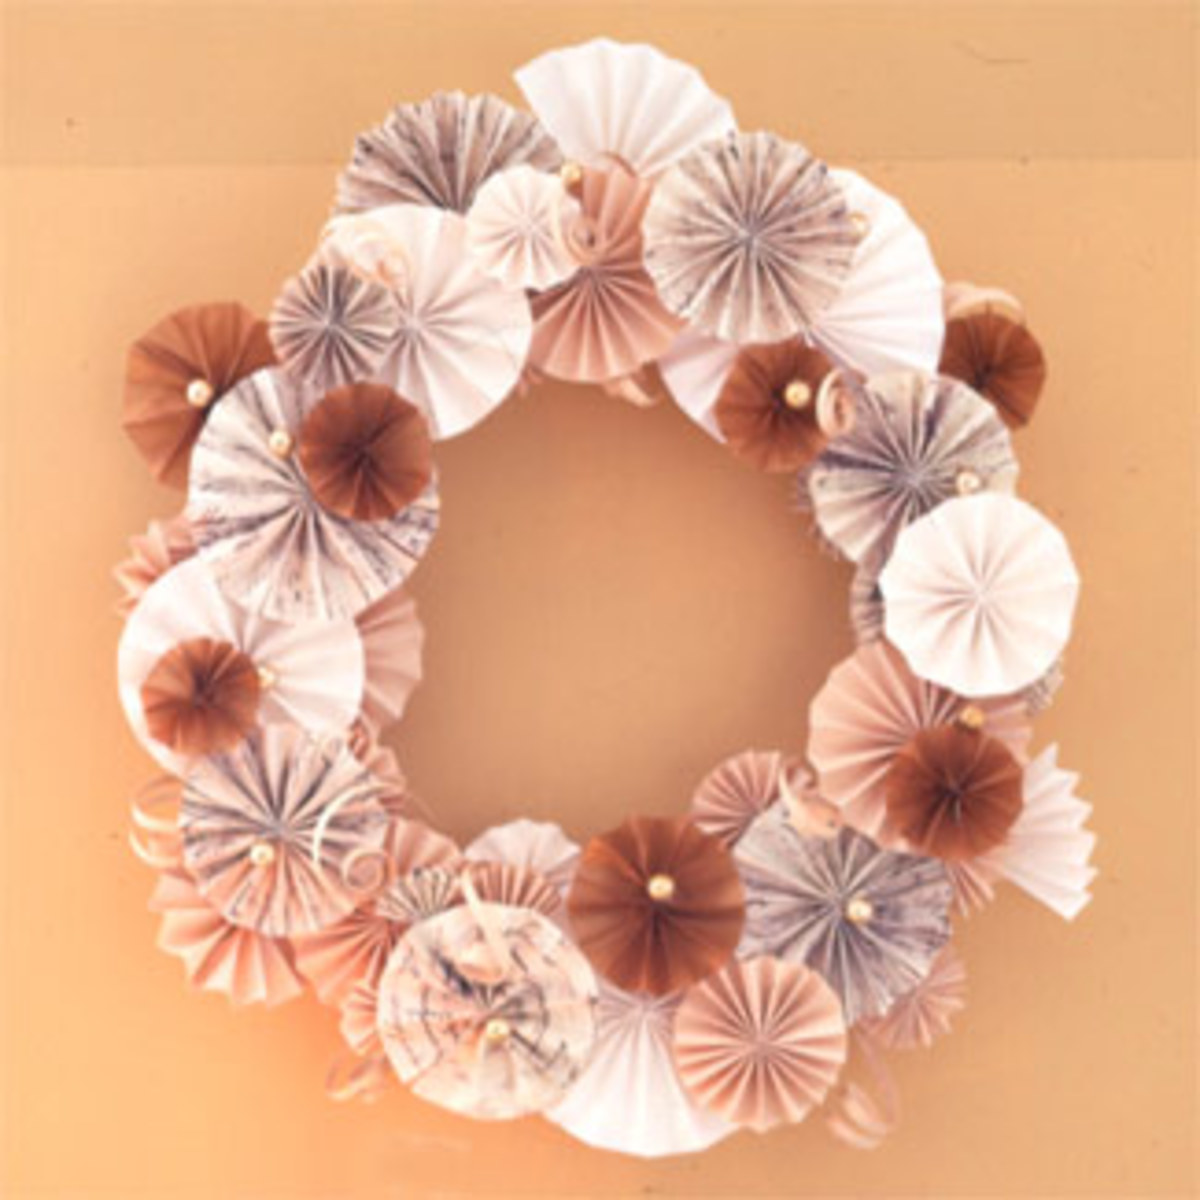 Tissue Paper Christmas Wreath goodhousekeeping.com